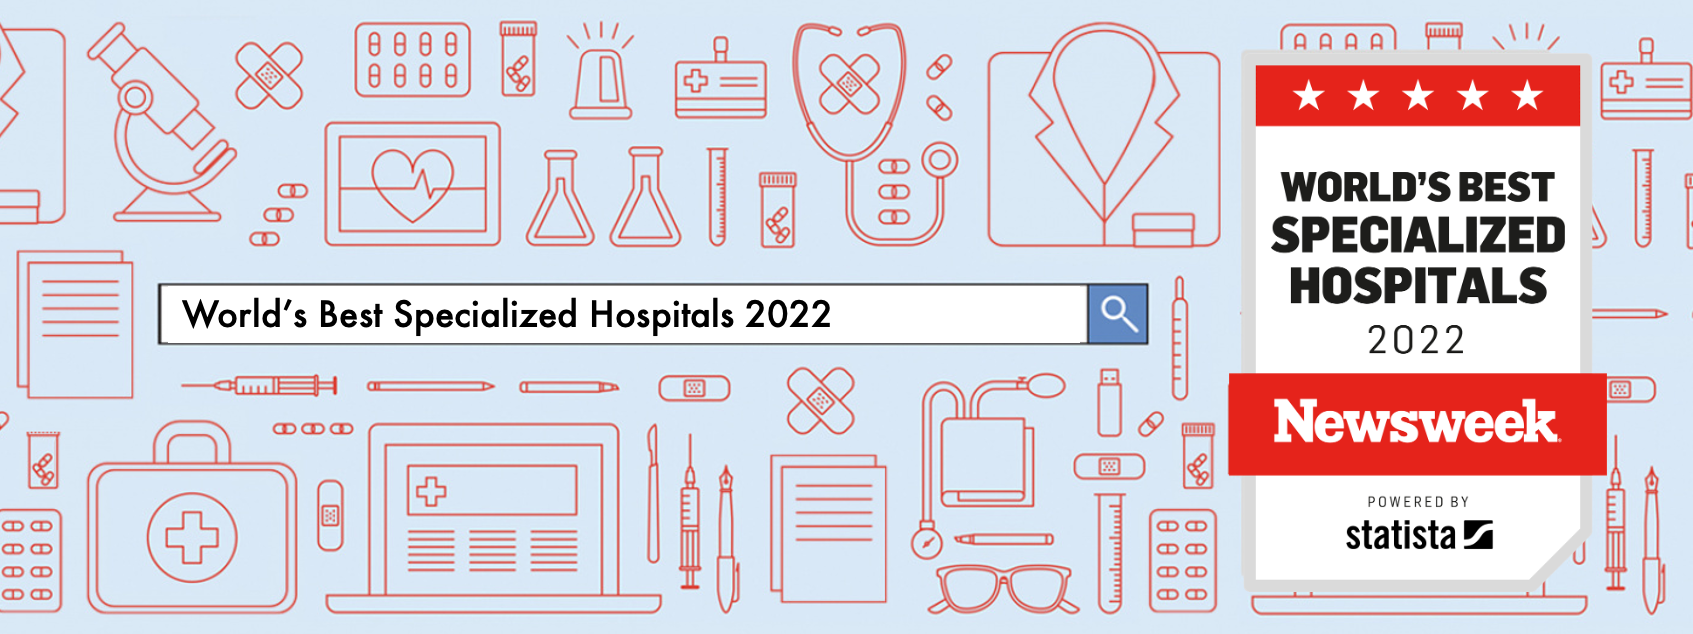 World's Best Specialized Hospitals 2022